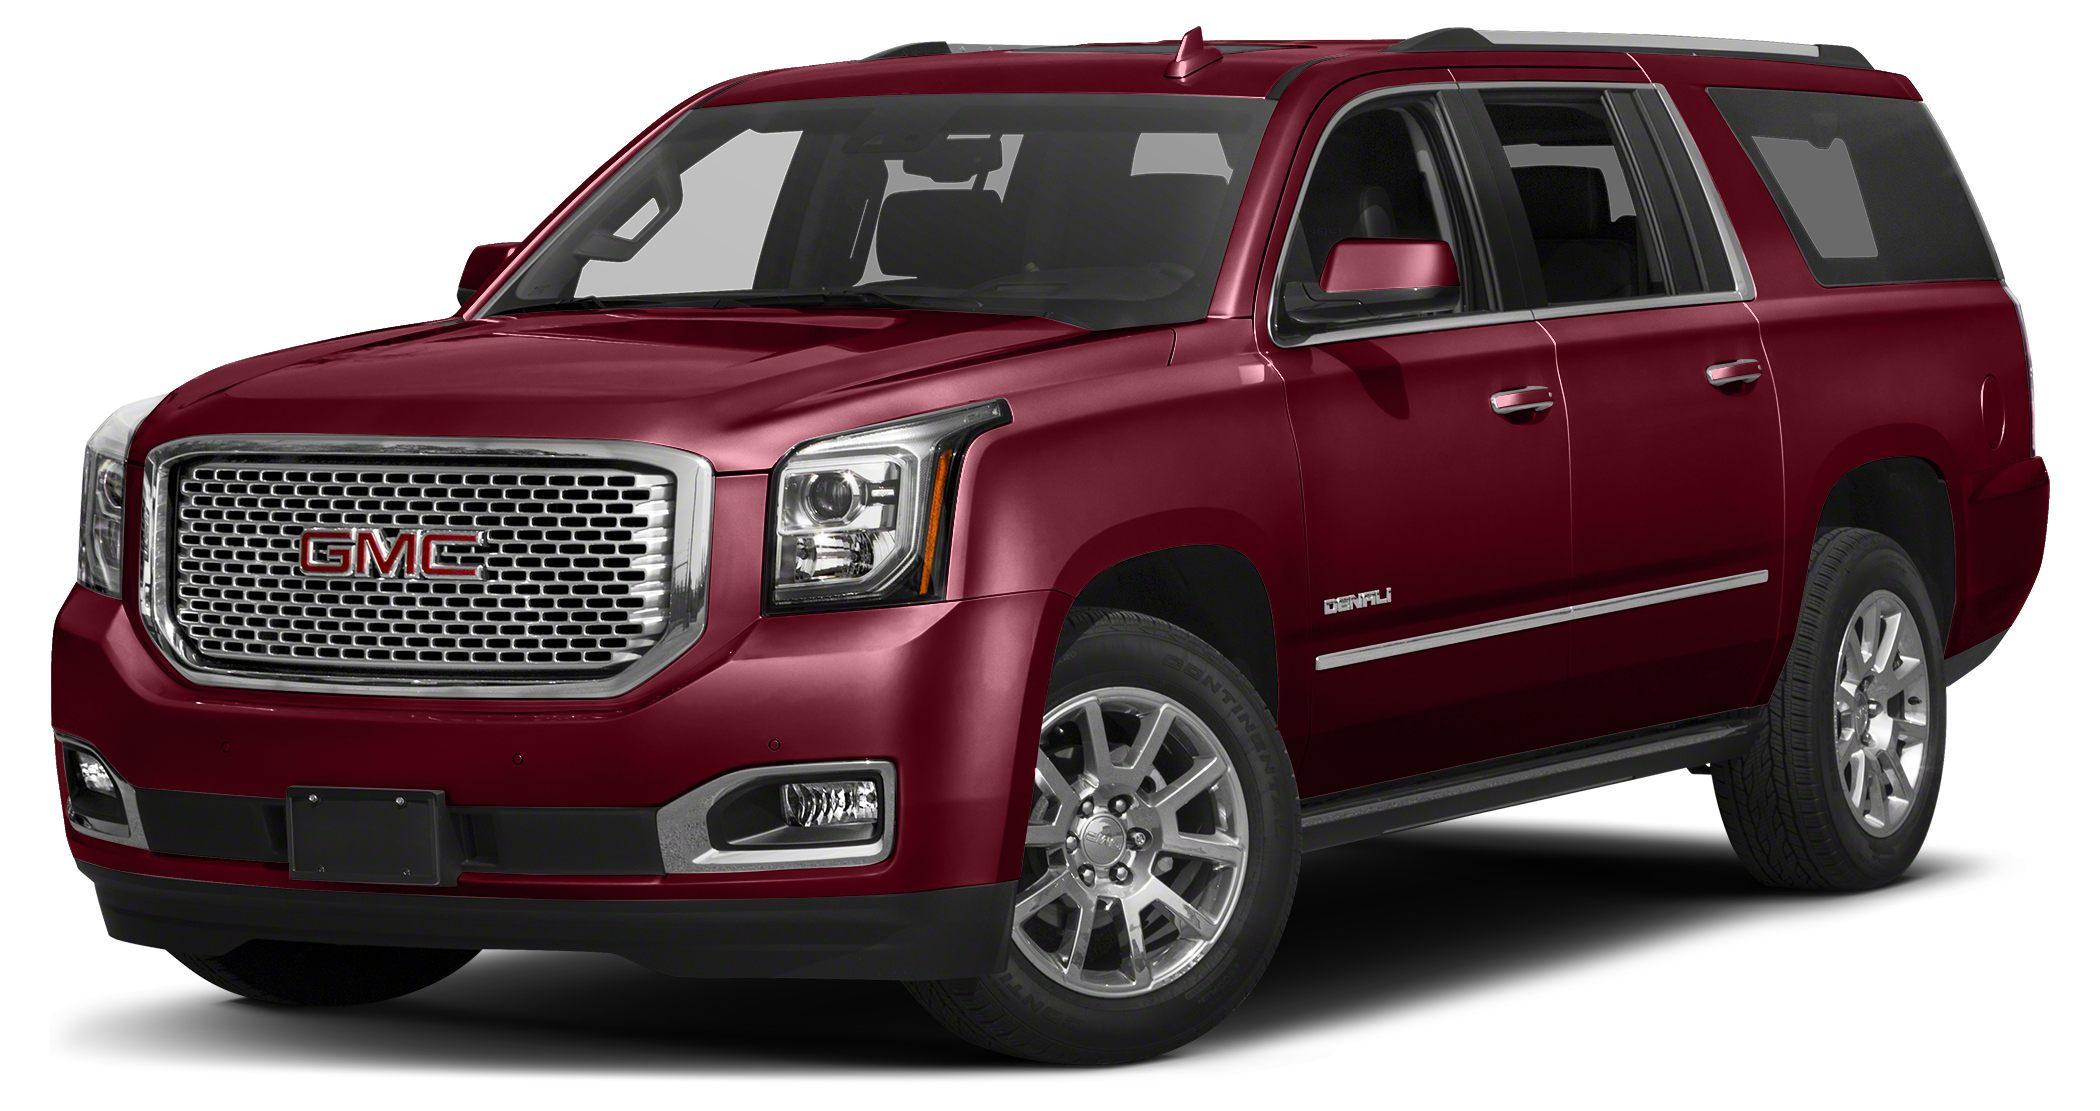 2018 GMC Yukon XL Denali Auto fans love the backup sensor rear air conditioning push button star